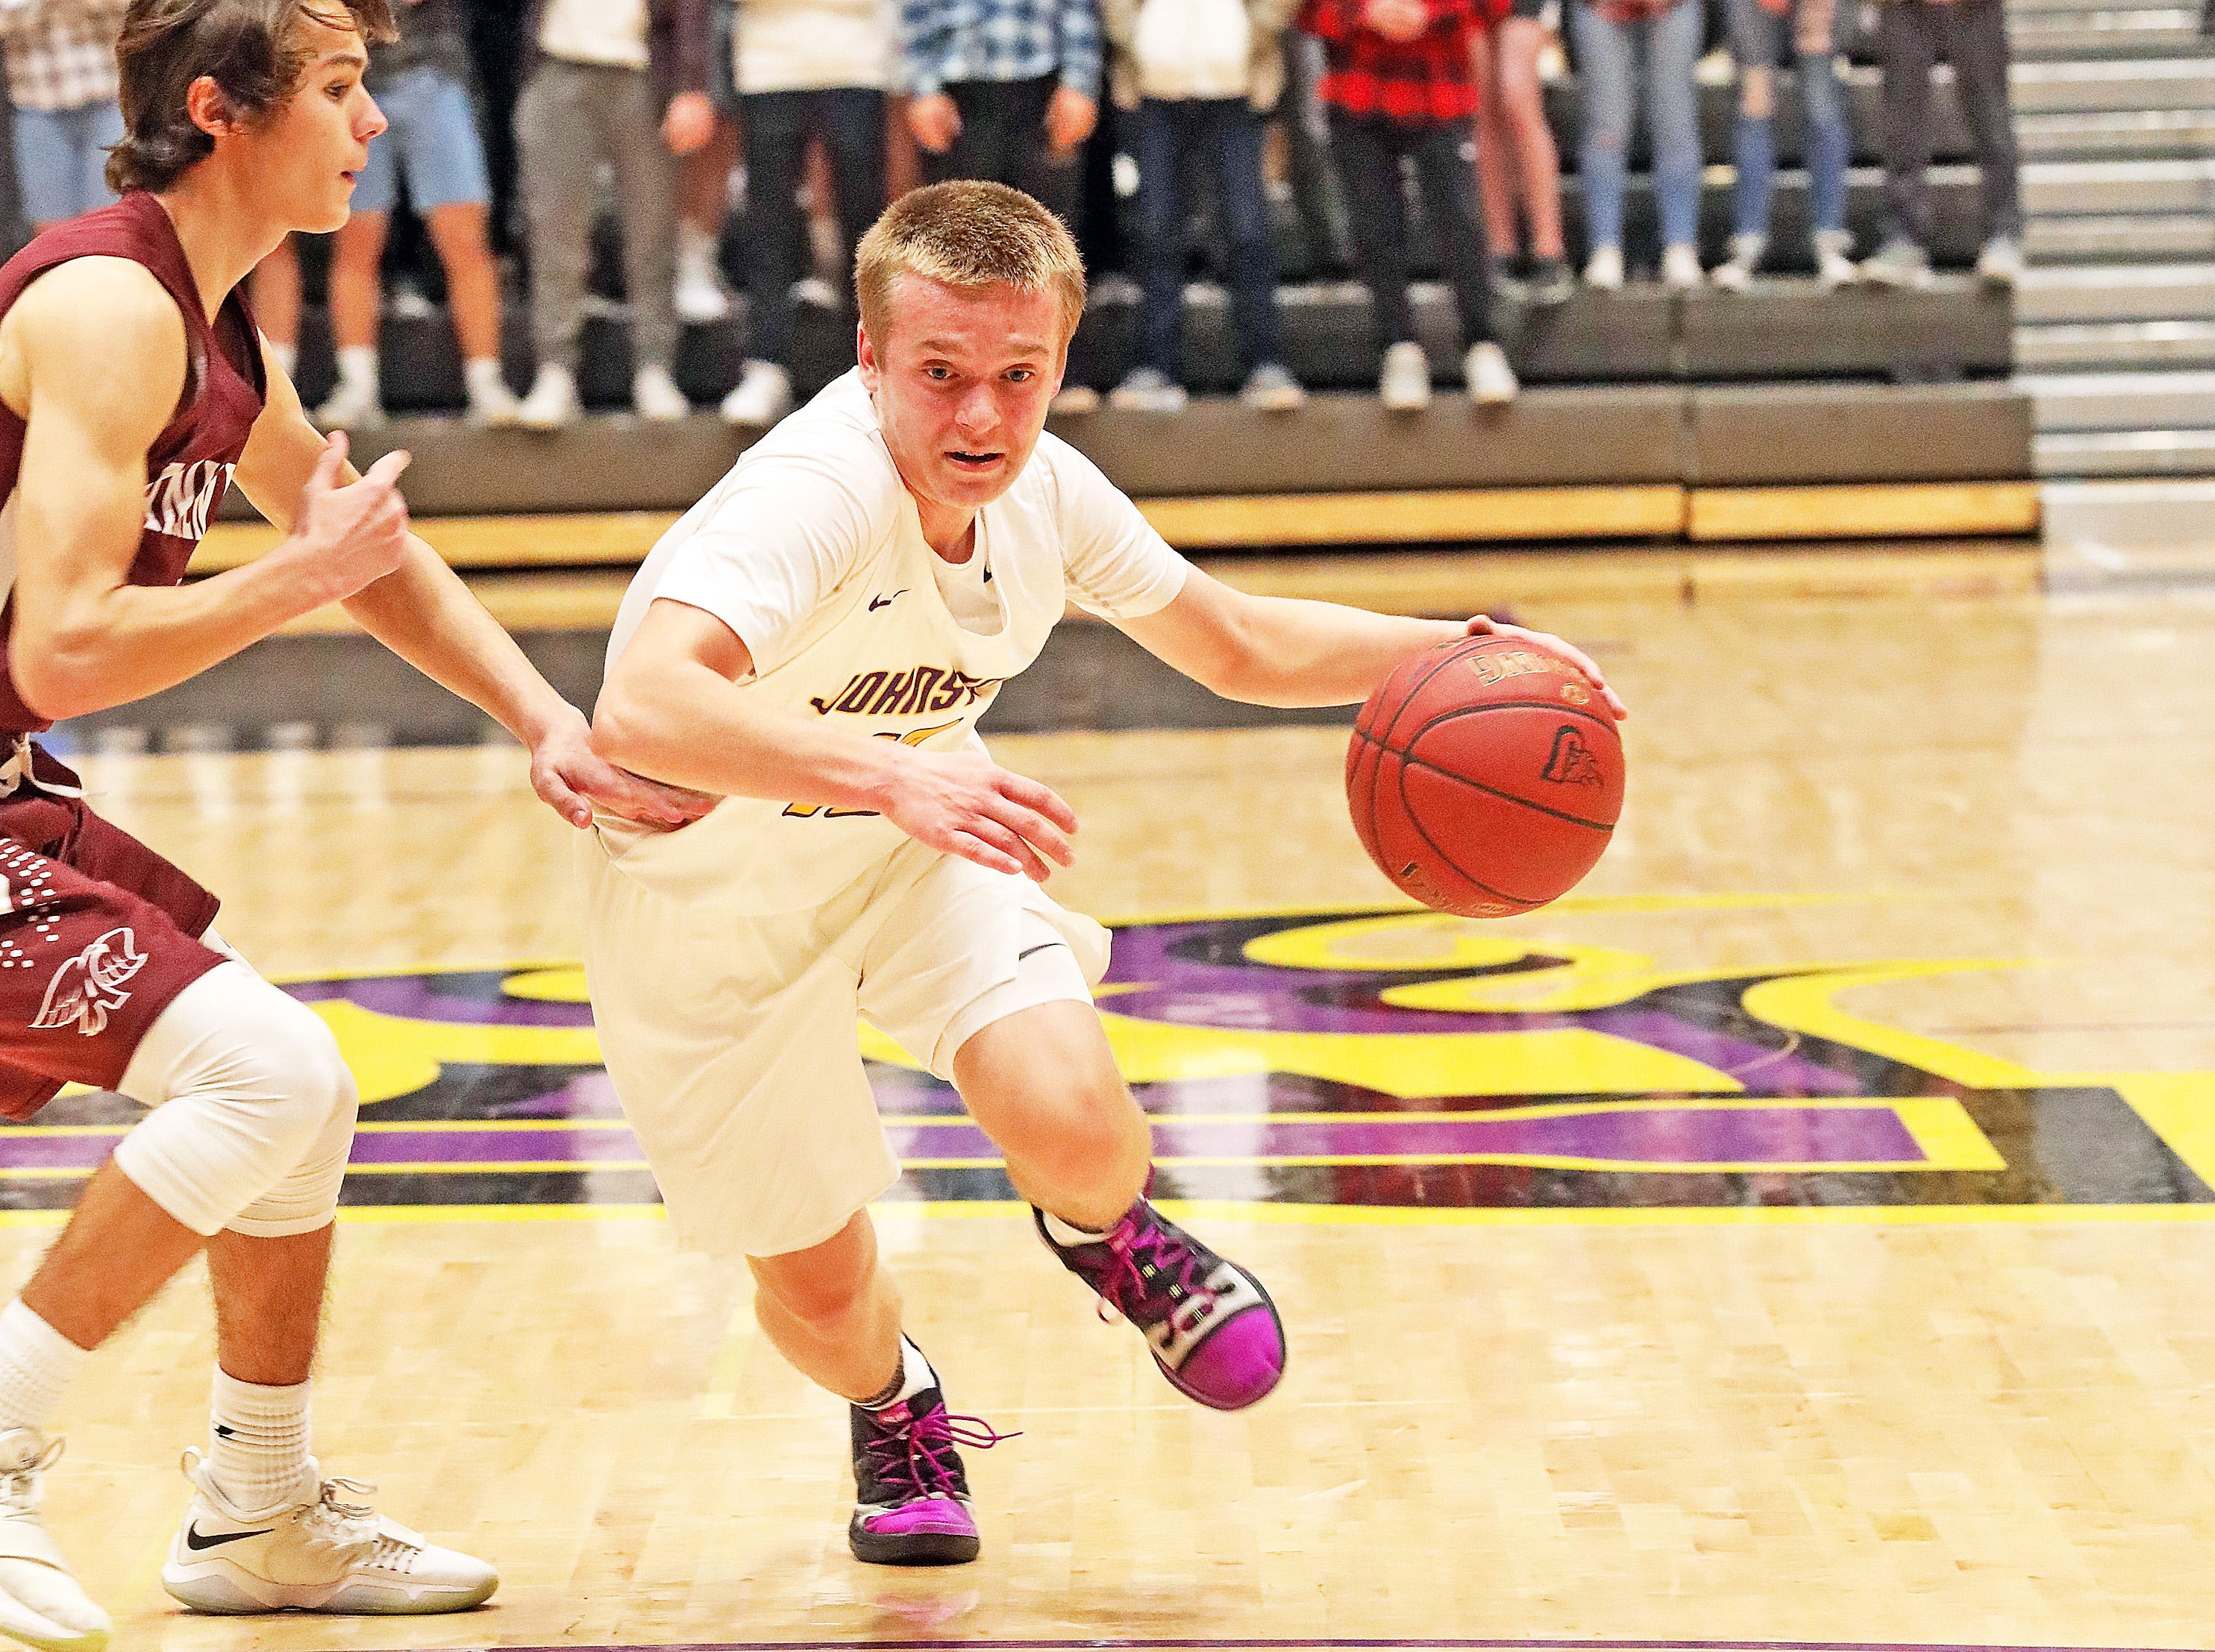 Johnston freshman Jacob Runyan heads towards the bucket as the Ankeny Hawks compete against the Johnston Dragons in high school basketball on Friday, Dec. 21, 2018 at Johnston High School.